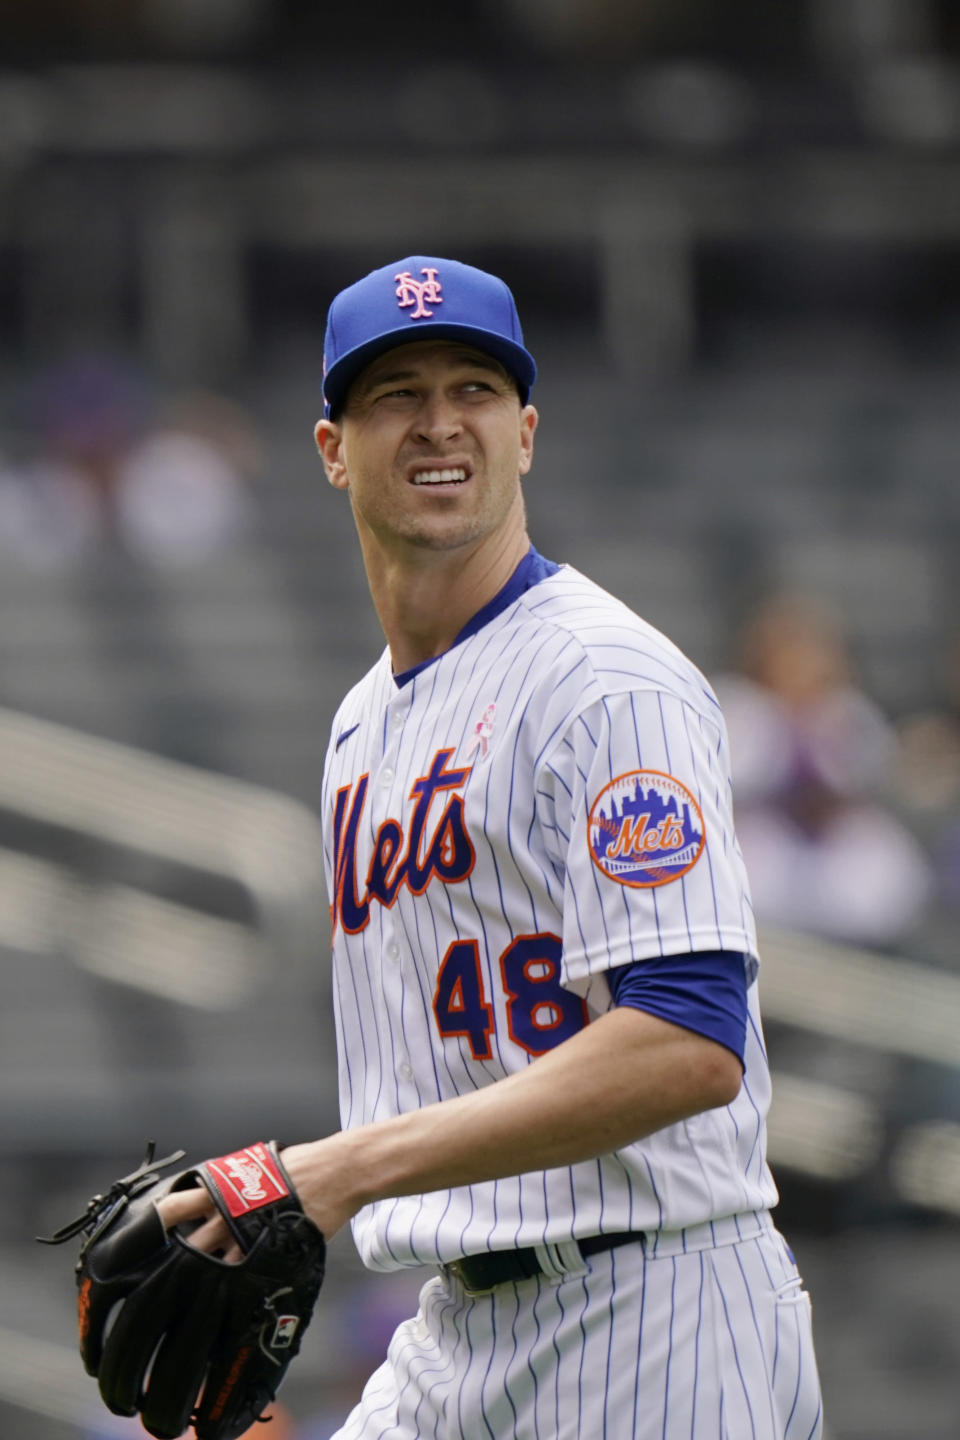 New York Mets starting pitcher Jacob deGrom leaves the field against the Arizona Diamondbacks, Sunday, May 9, 2021, in New York. deGrom left the game in the sixth inning after throwing only two warmup pitches. (AP Photo/Kathy Willens)